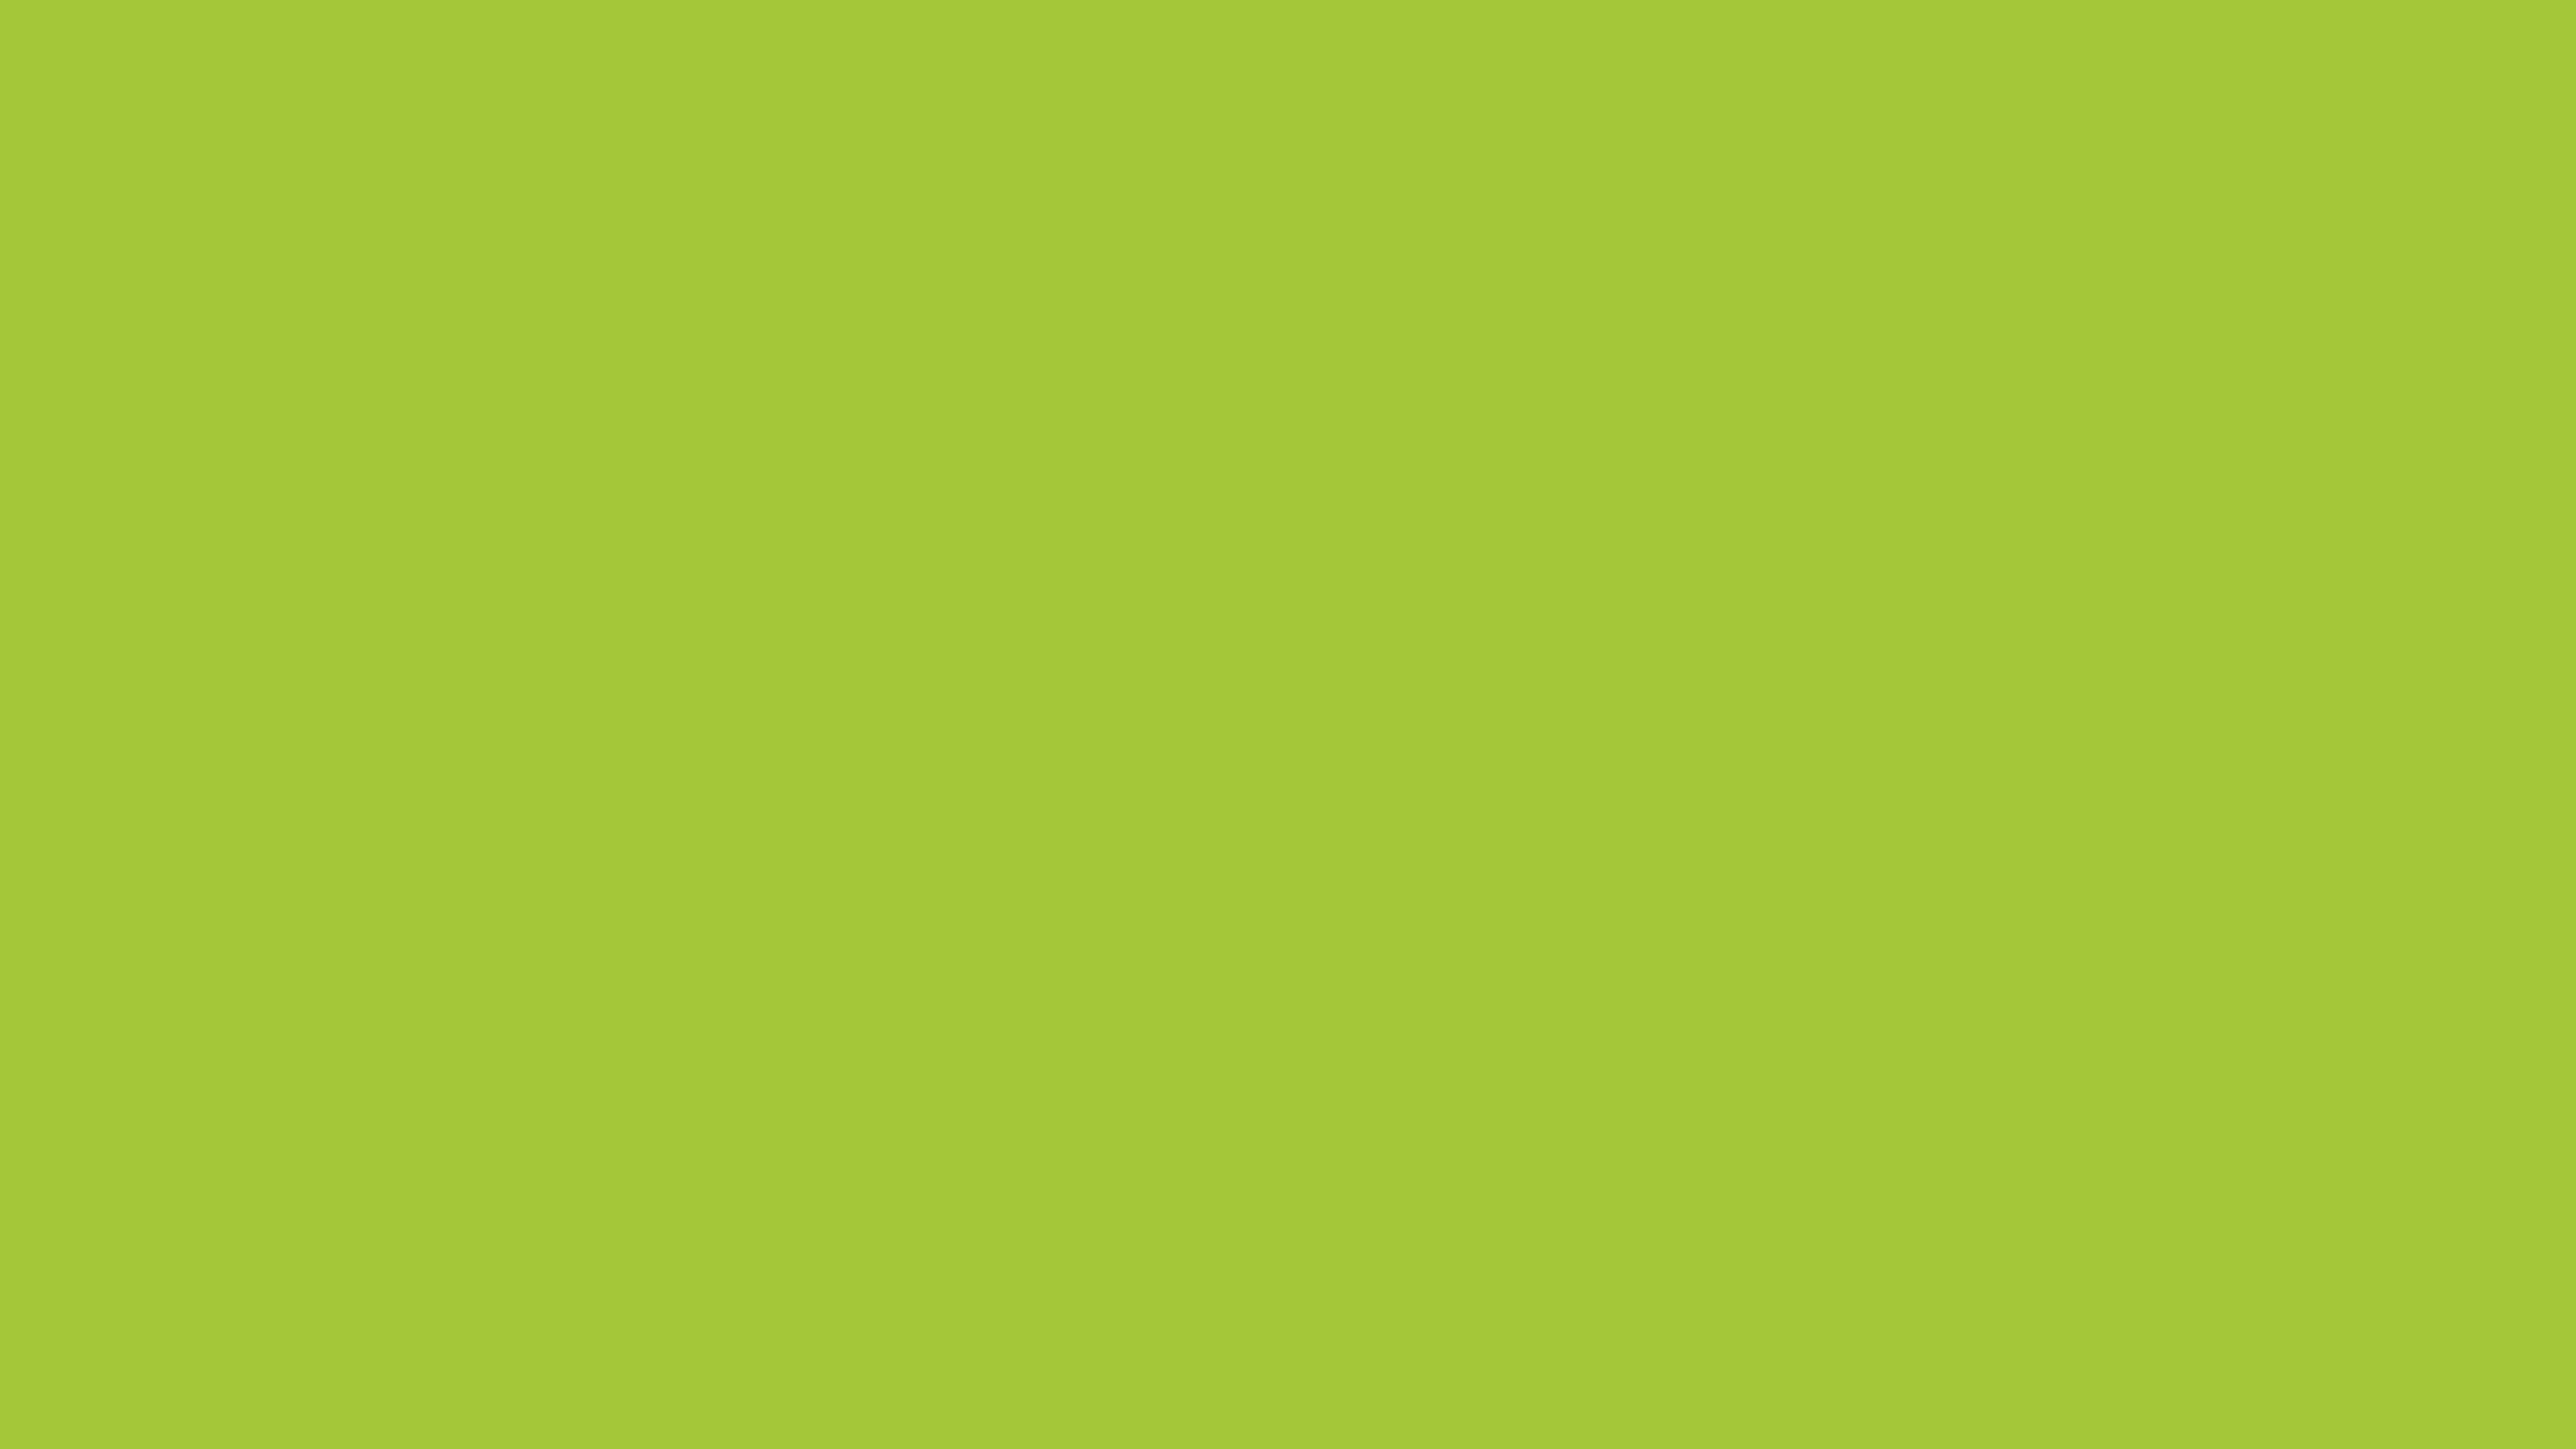 7680x4320 Android Green Solid Color Background